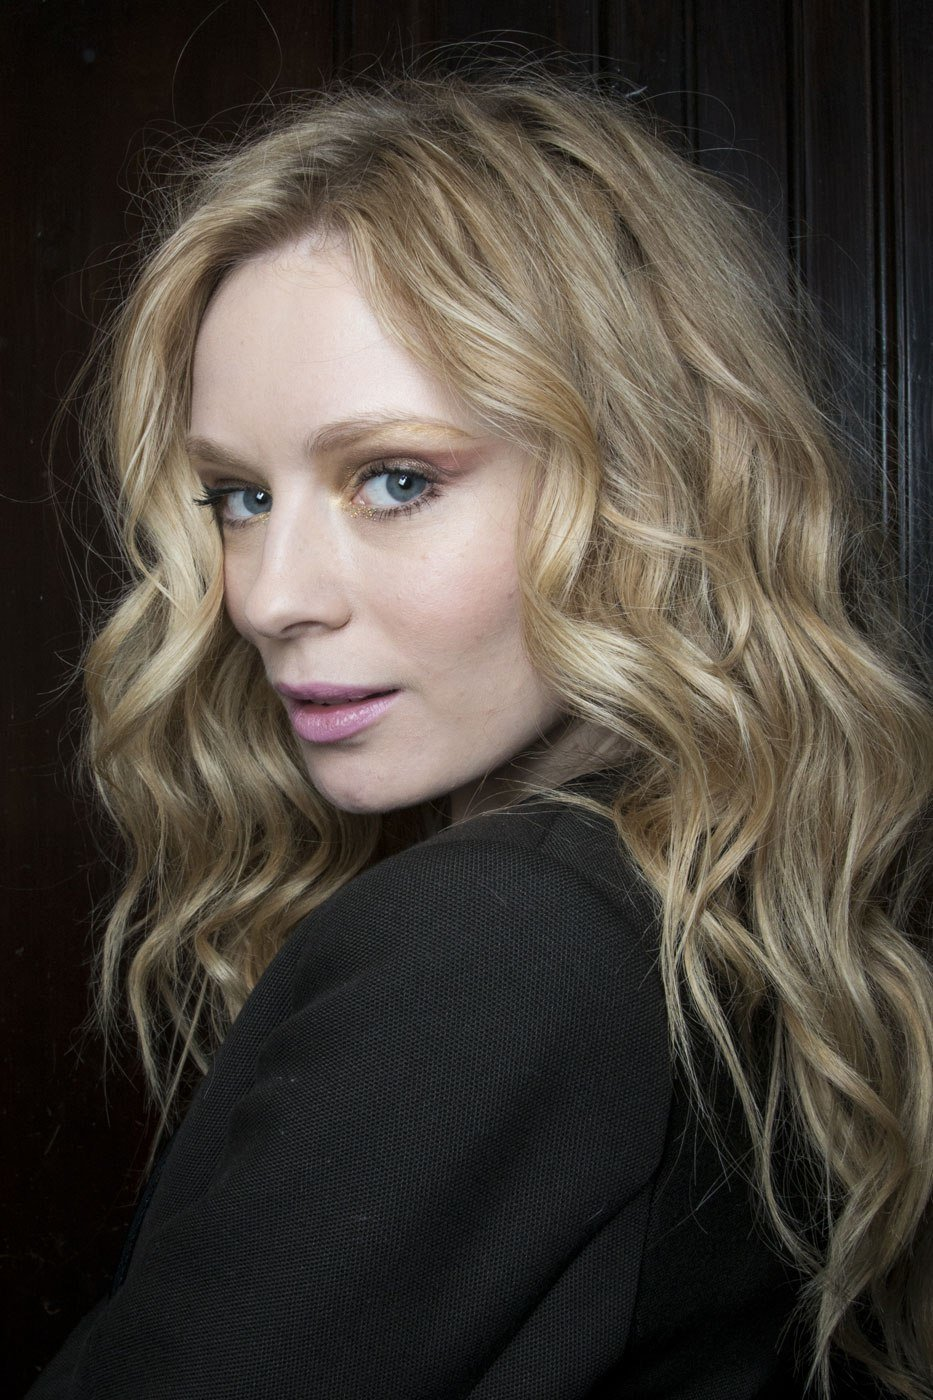 The Best How To Style Curly Hair In The Winter Stylecaster Pictures